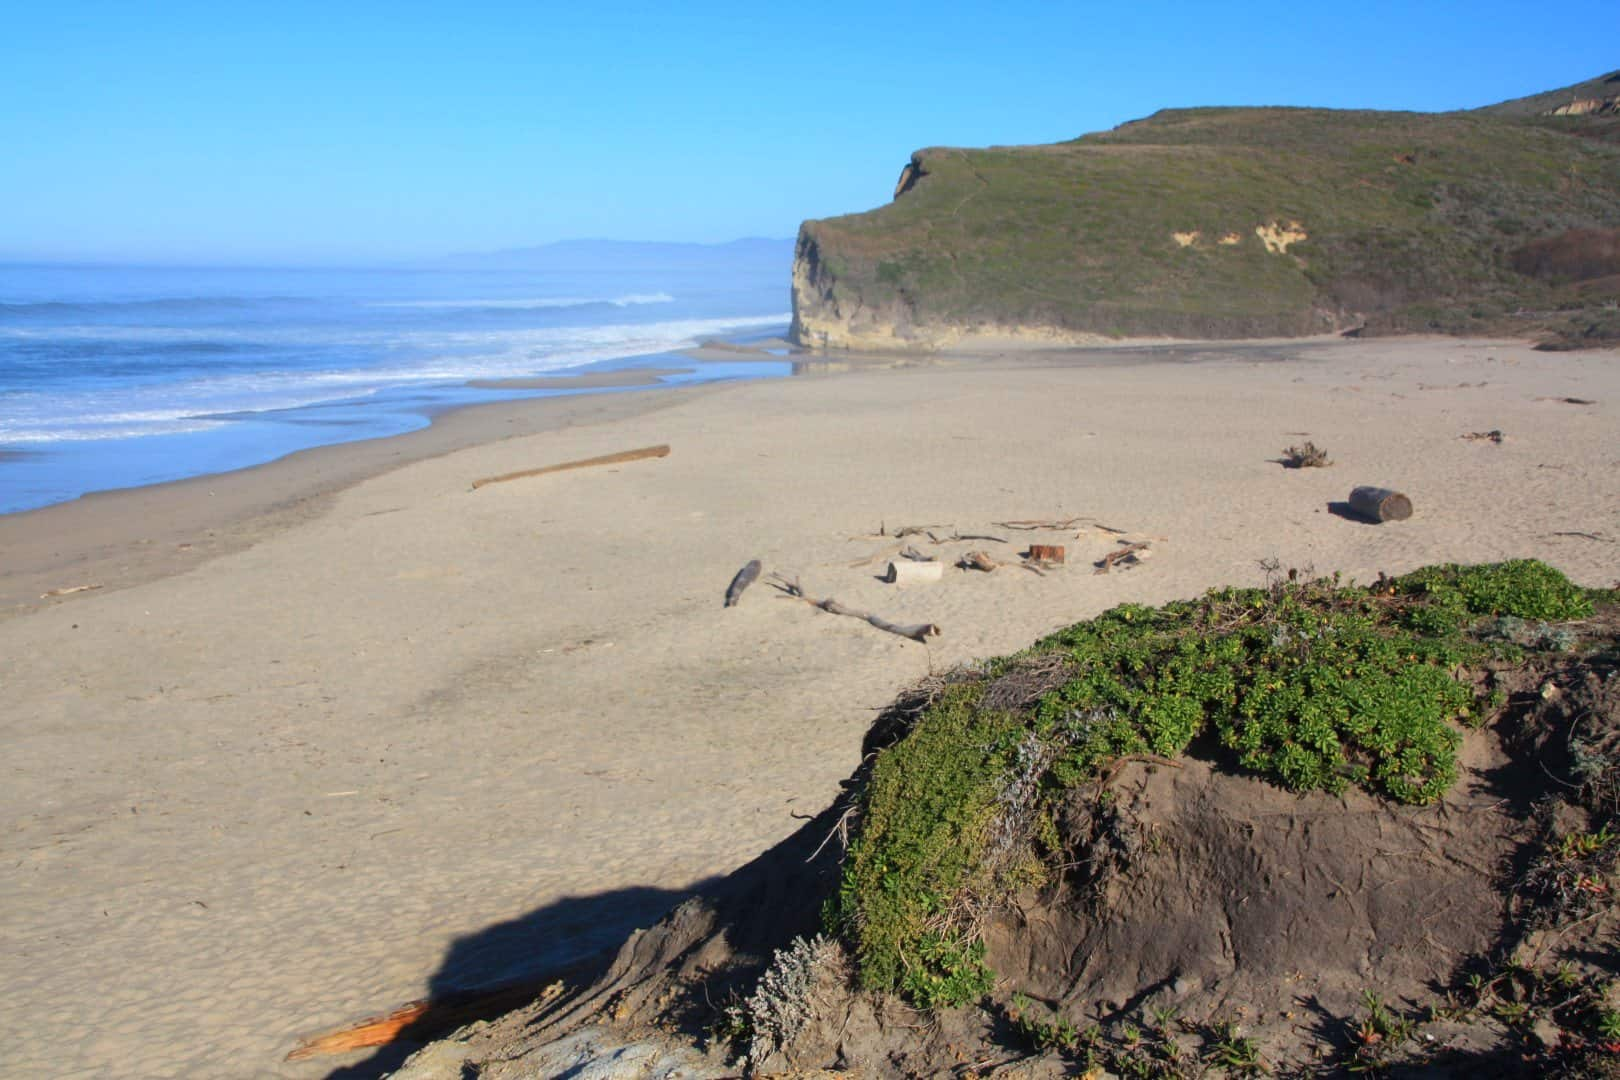 north-beach-in-pescadero-san-gregorio